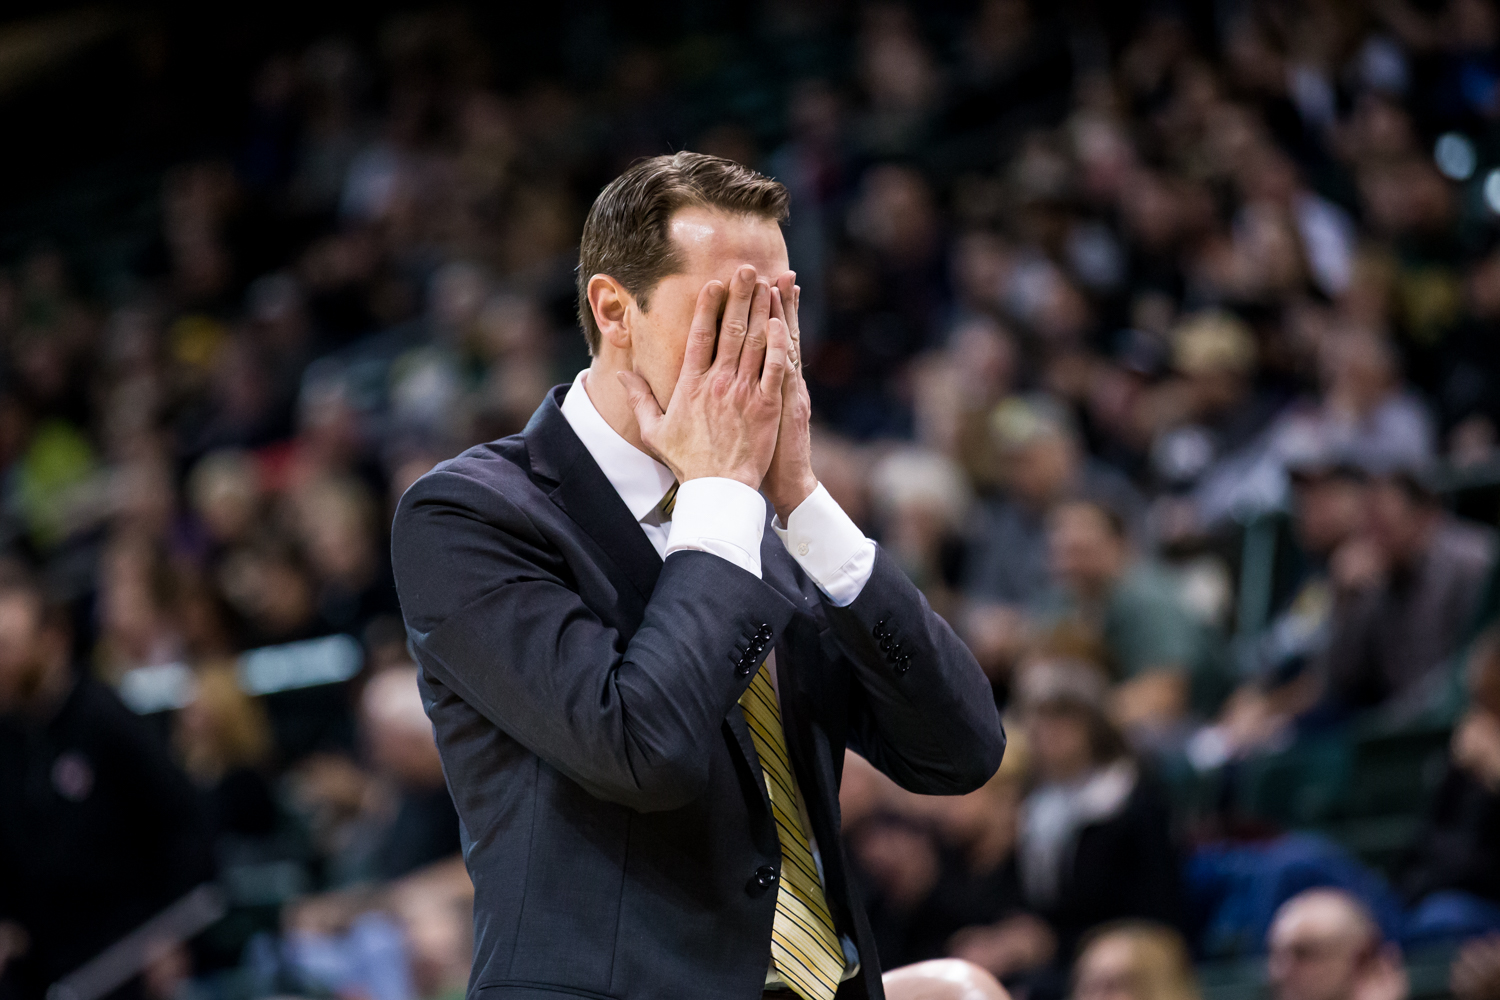 Men%27s+Basketball+Head+Coach+John+Brannen+reacts+during+the+game+against+Wright+State.+The+Norse+fell+to+Wright+State+81-77.